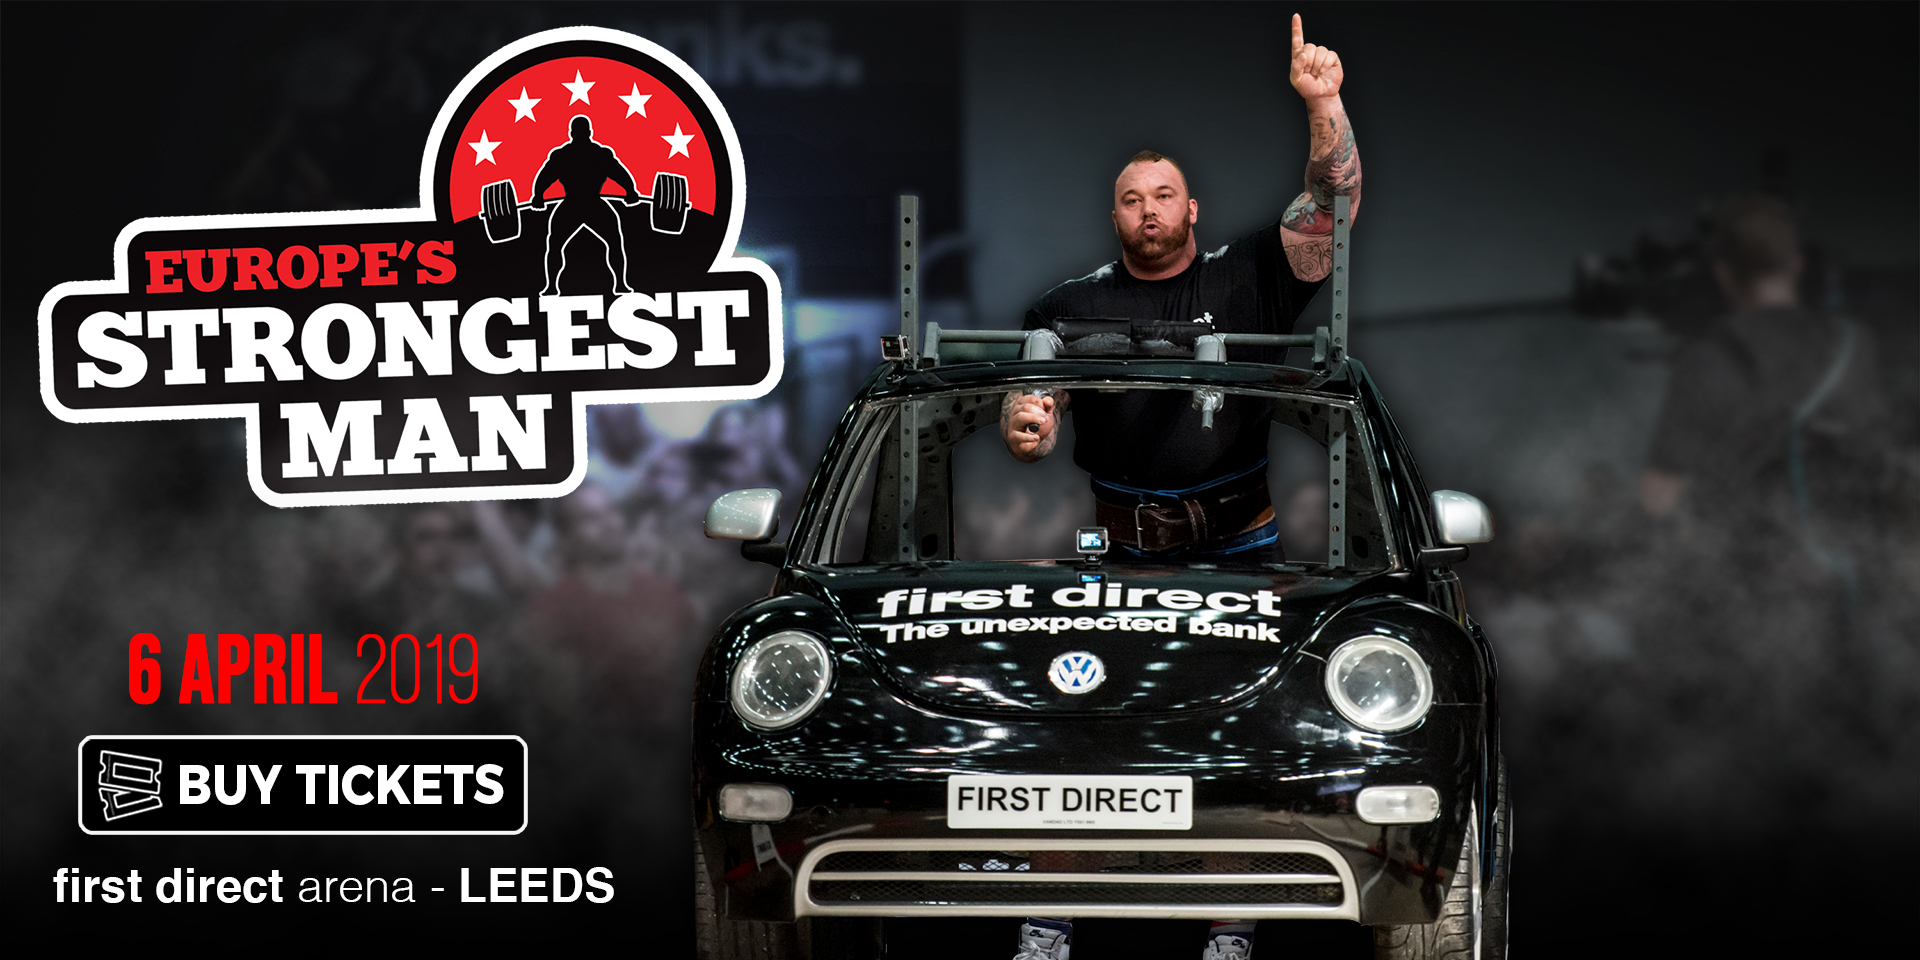 Europe's Strongest Man 2019 - See the biggest names in Strongman battle it out at First Direct Arena, Leeds!